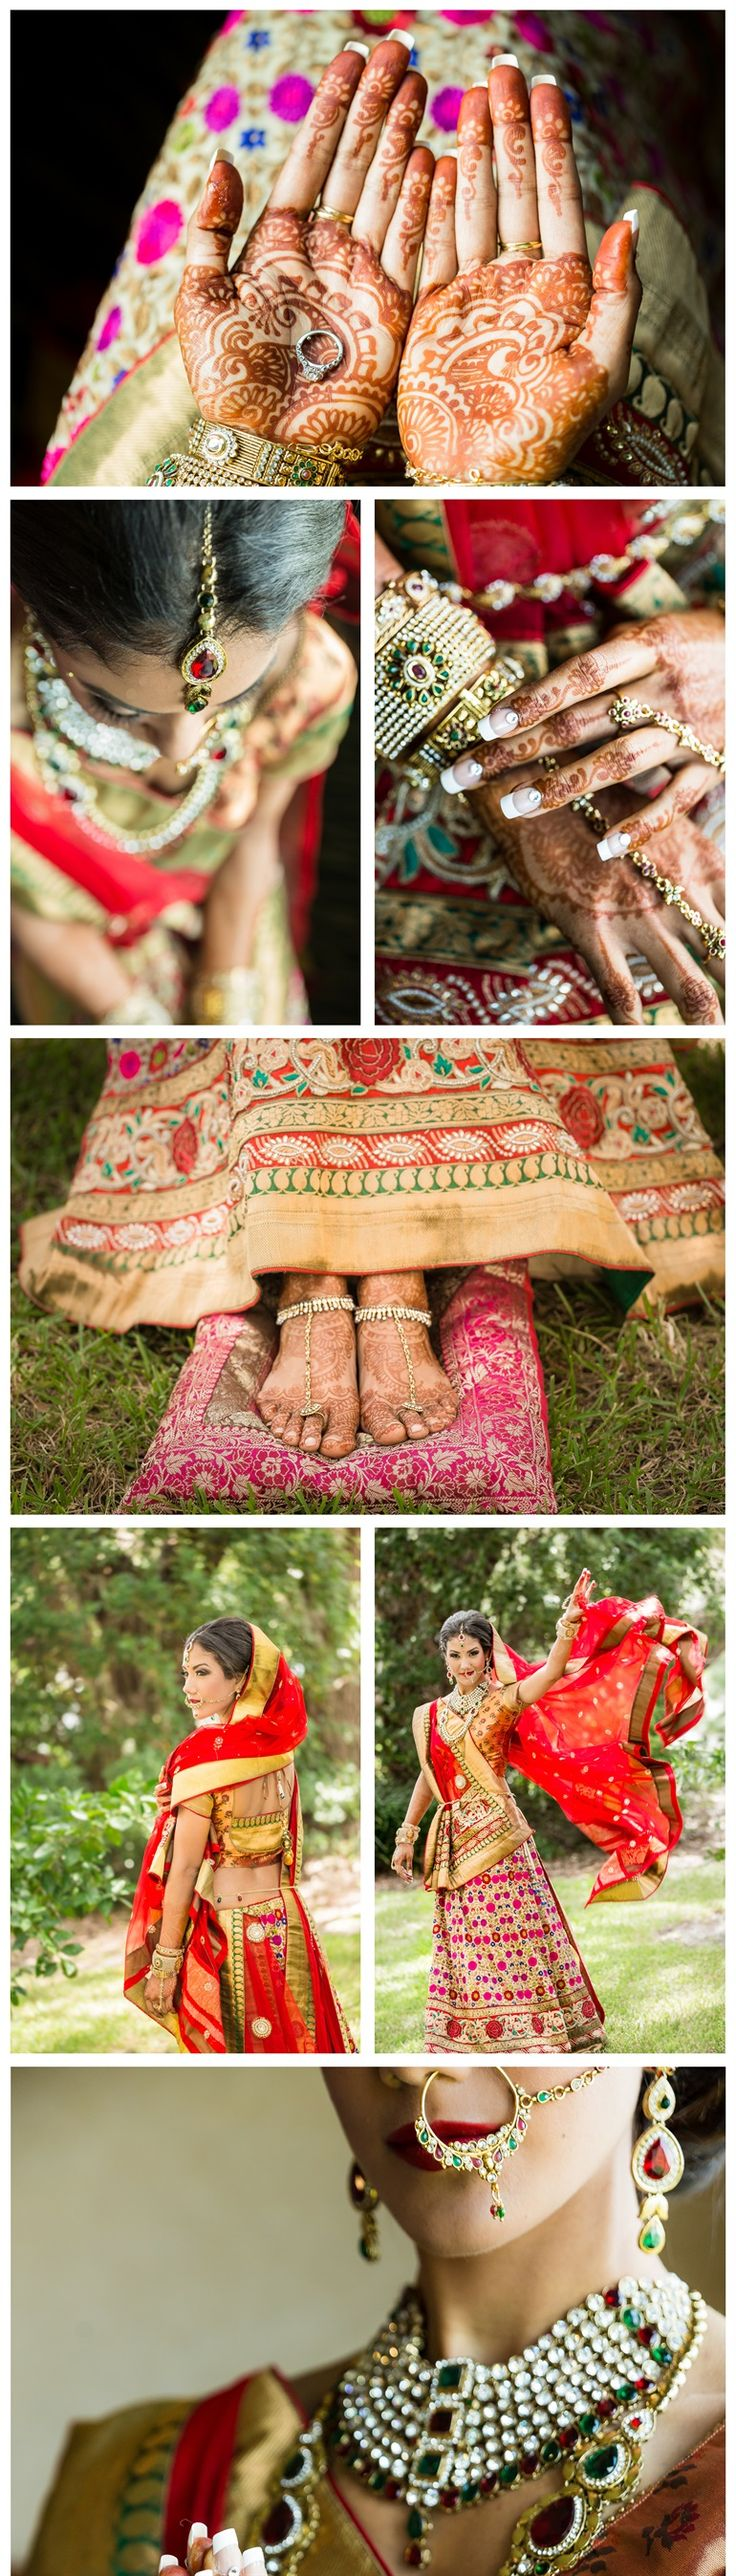 Indian bride + henna + jewelry prettiness  styled shoot   Rising Lotus Photography